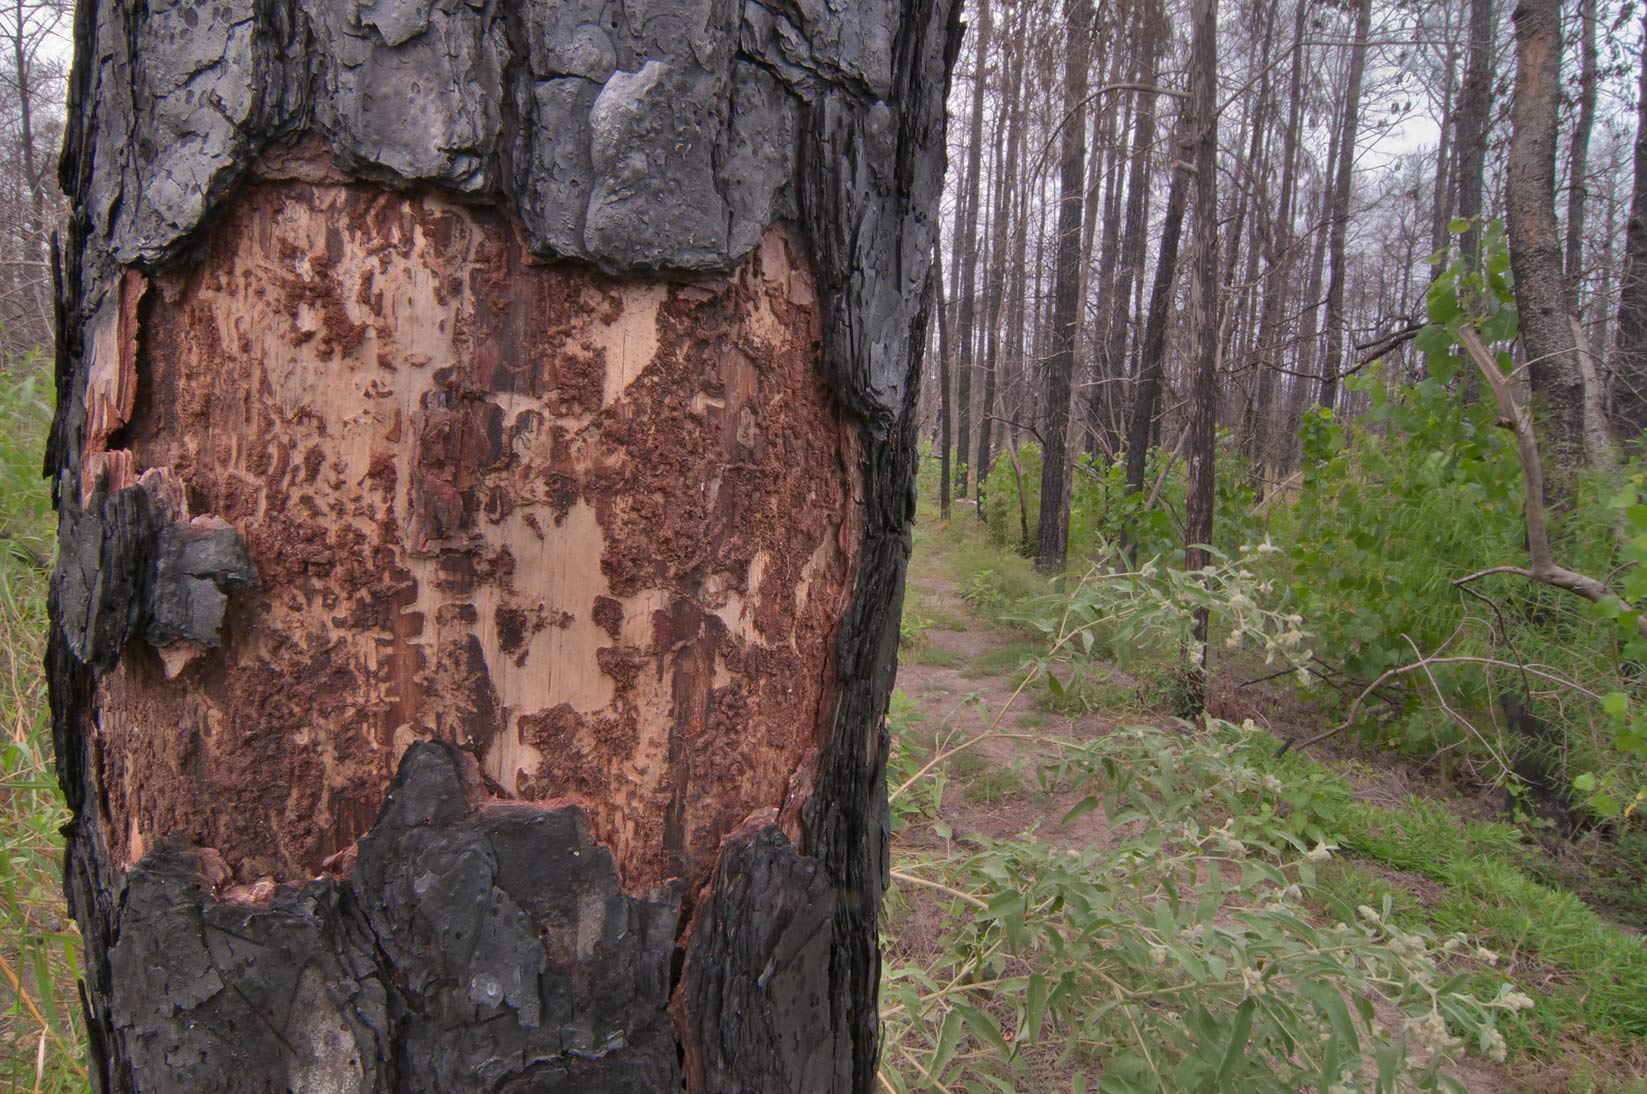 Burnt pine damaged by bark beetles in Bastrop State Park. Bastrop, Texas